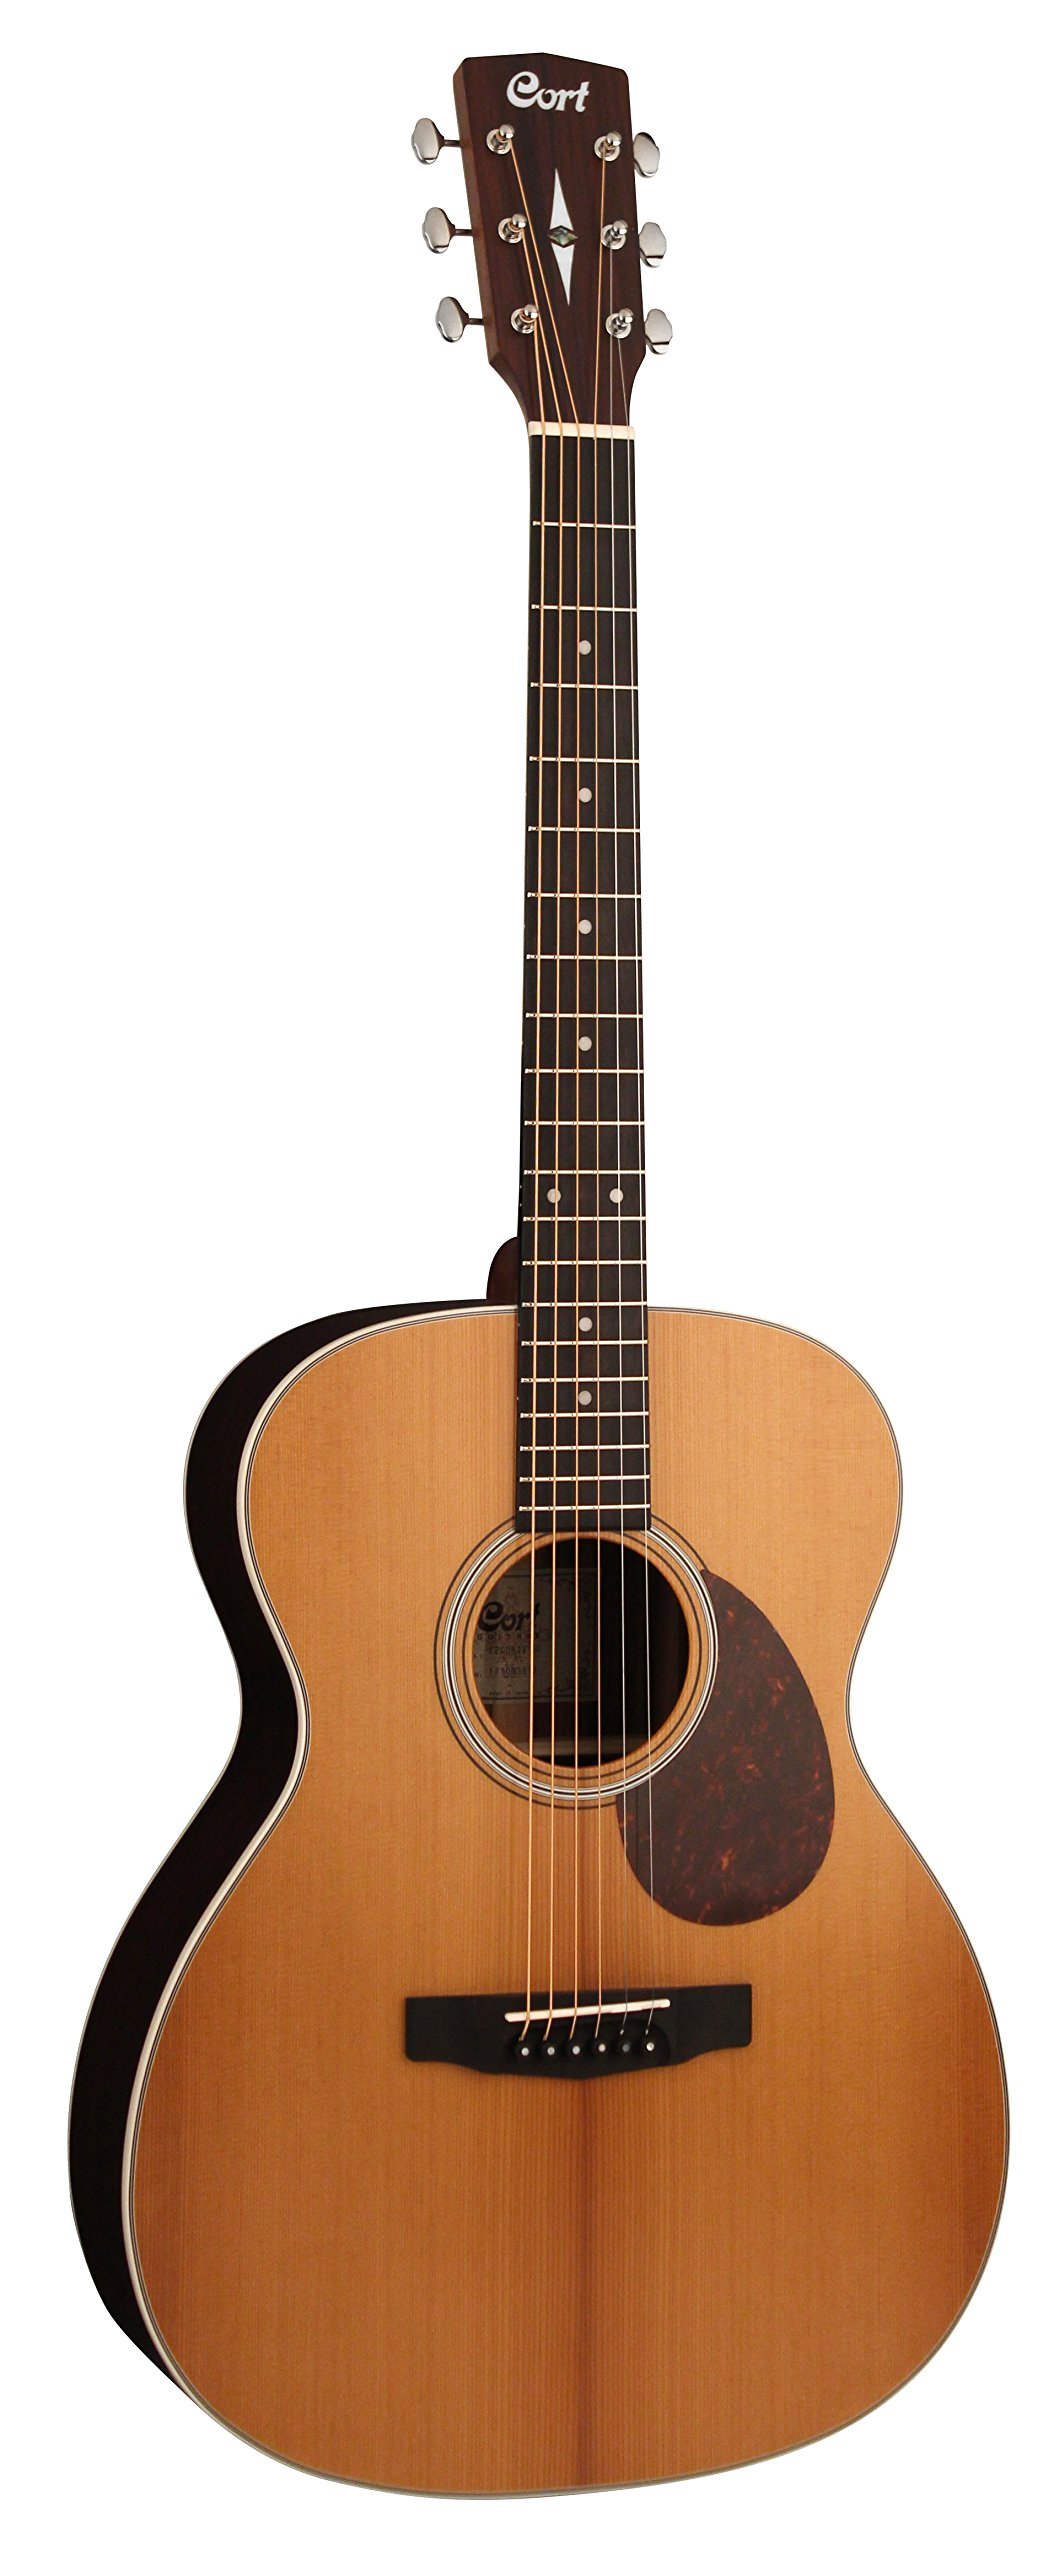 Cort 6 String Acoustic Guitar, Right Handed, Concert (L200 ATV SG) by Cort